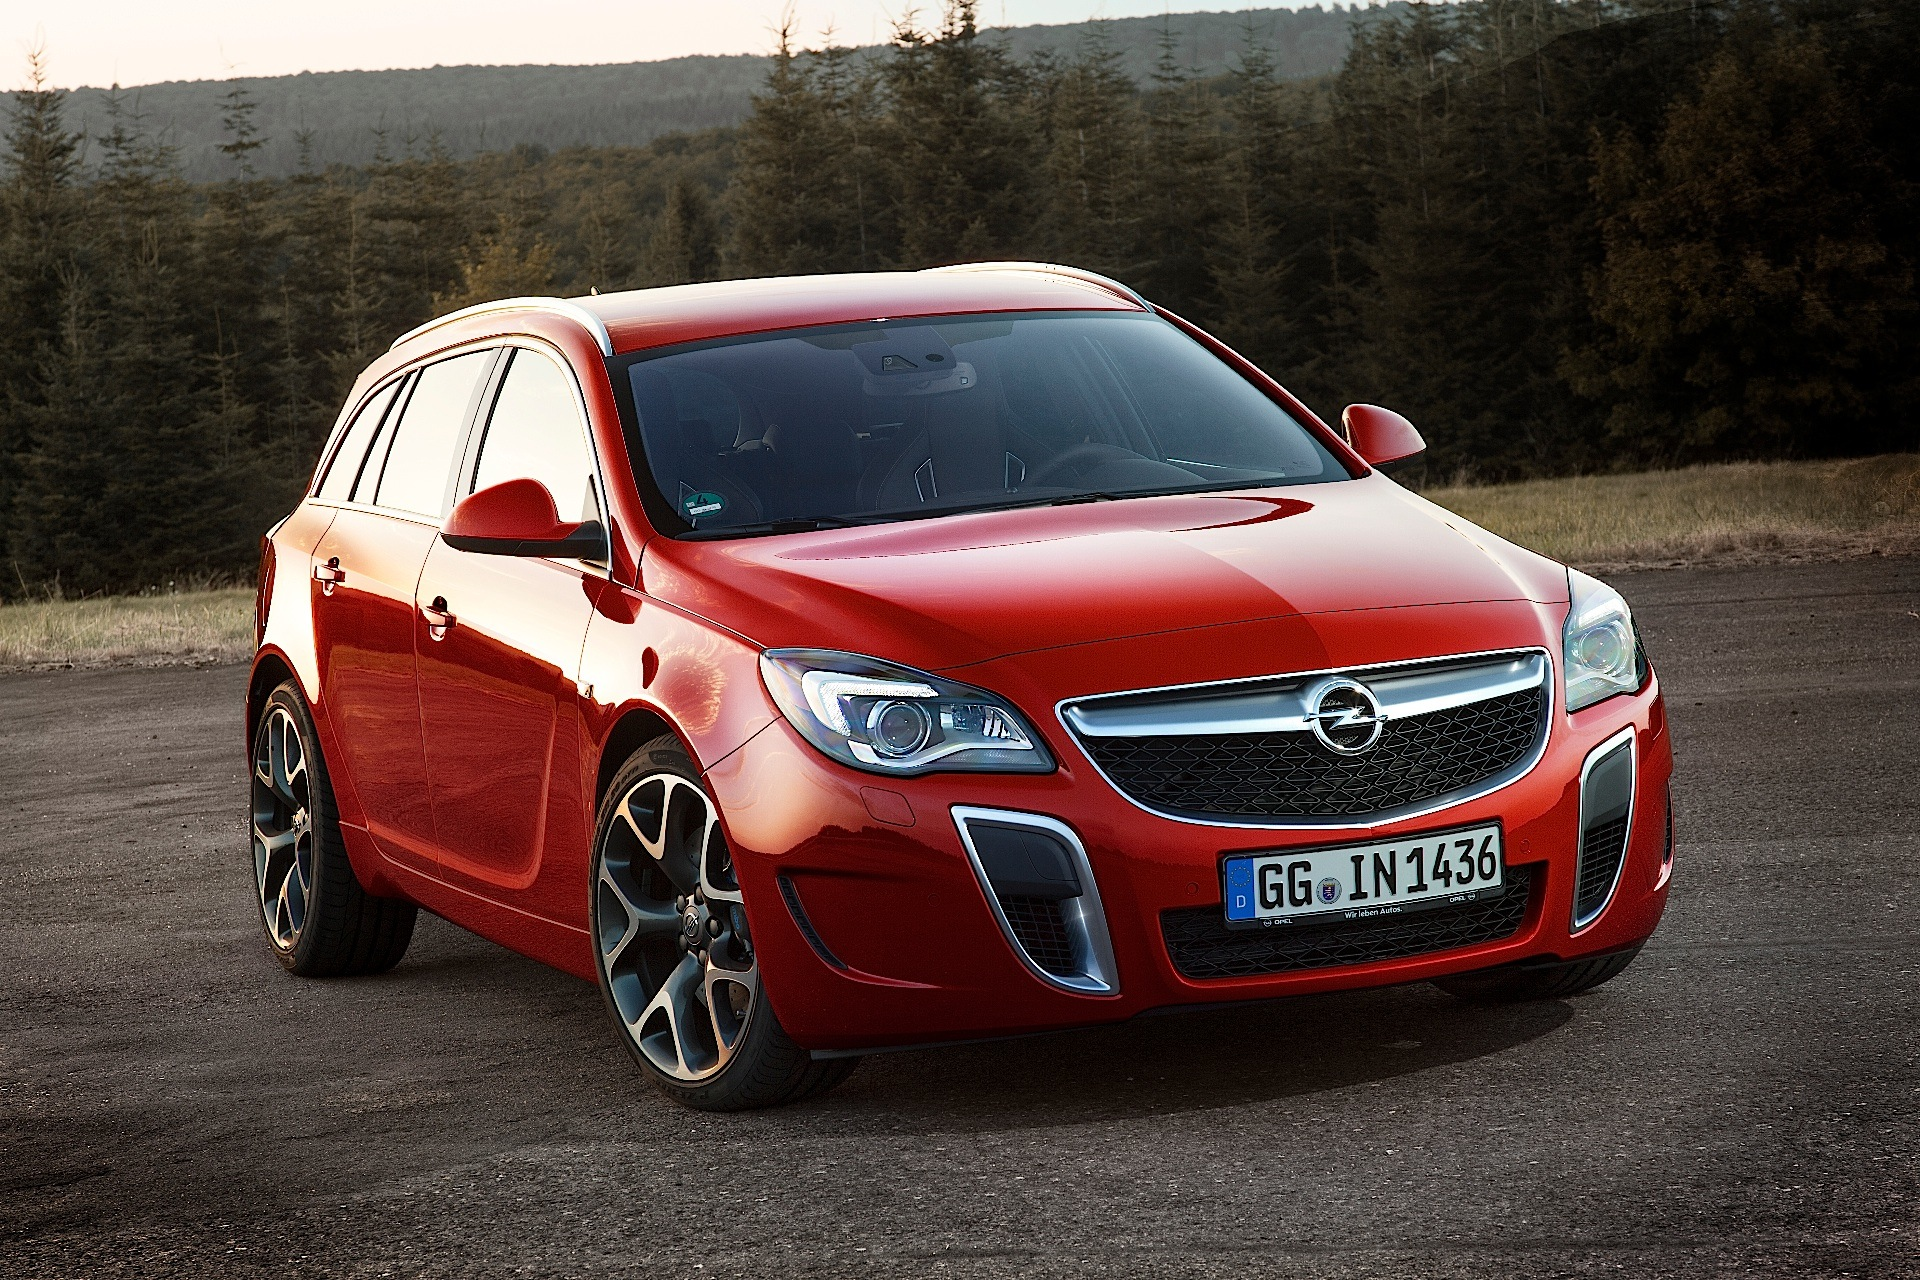 opel insignia sports tourer opc specs 2013 2014 2015 2016 2017 2018 autoevolution. Black Bedroom Furniture Sets. Home Design Ideas